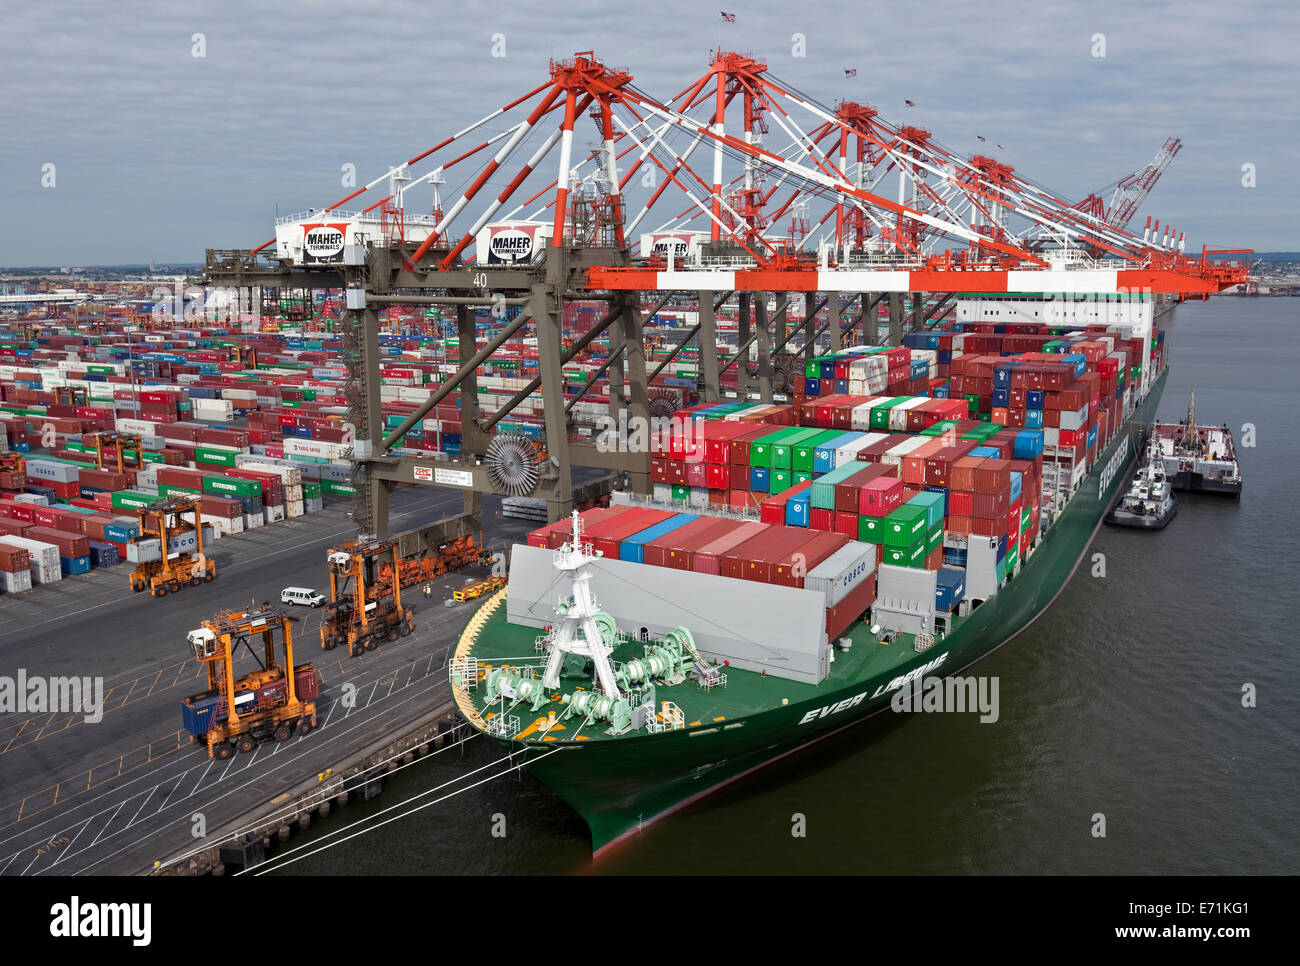 Super Post-Panamax Container Ship; the Ever Lissome - Stock Image